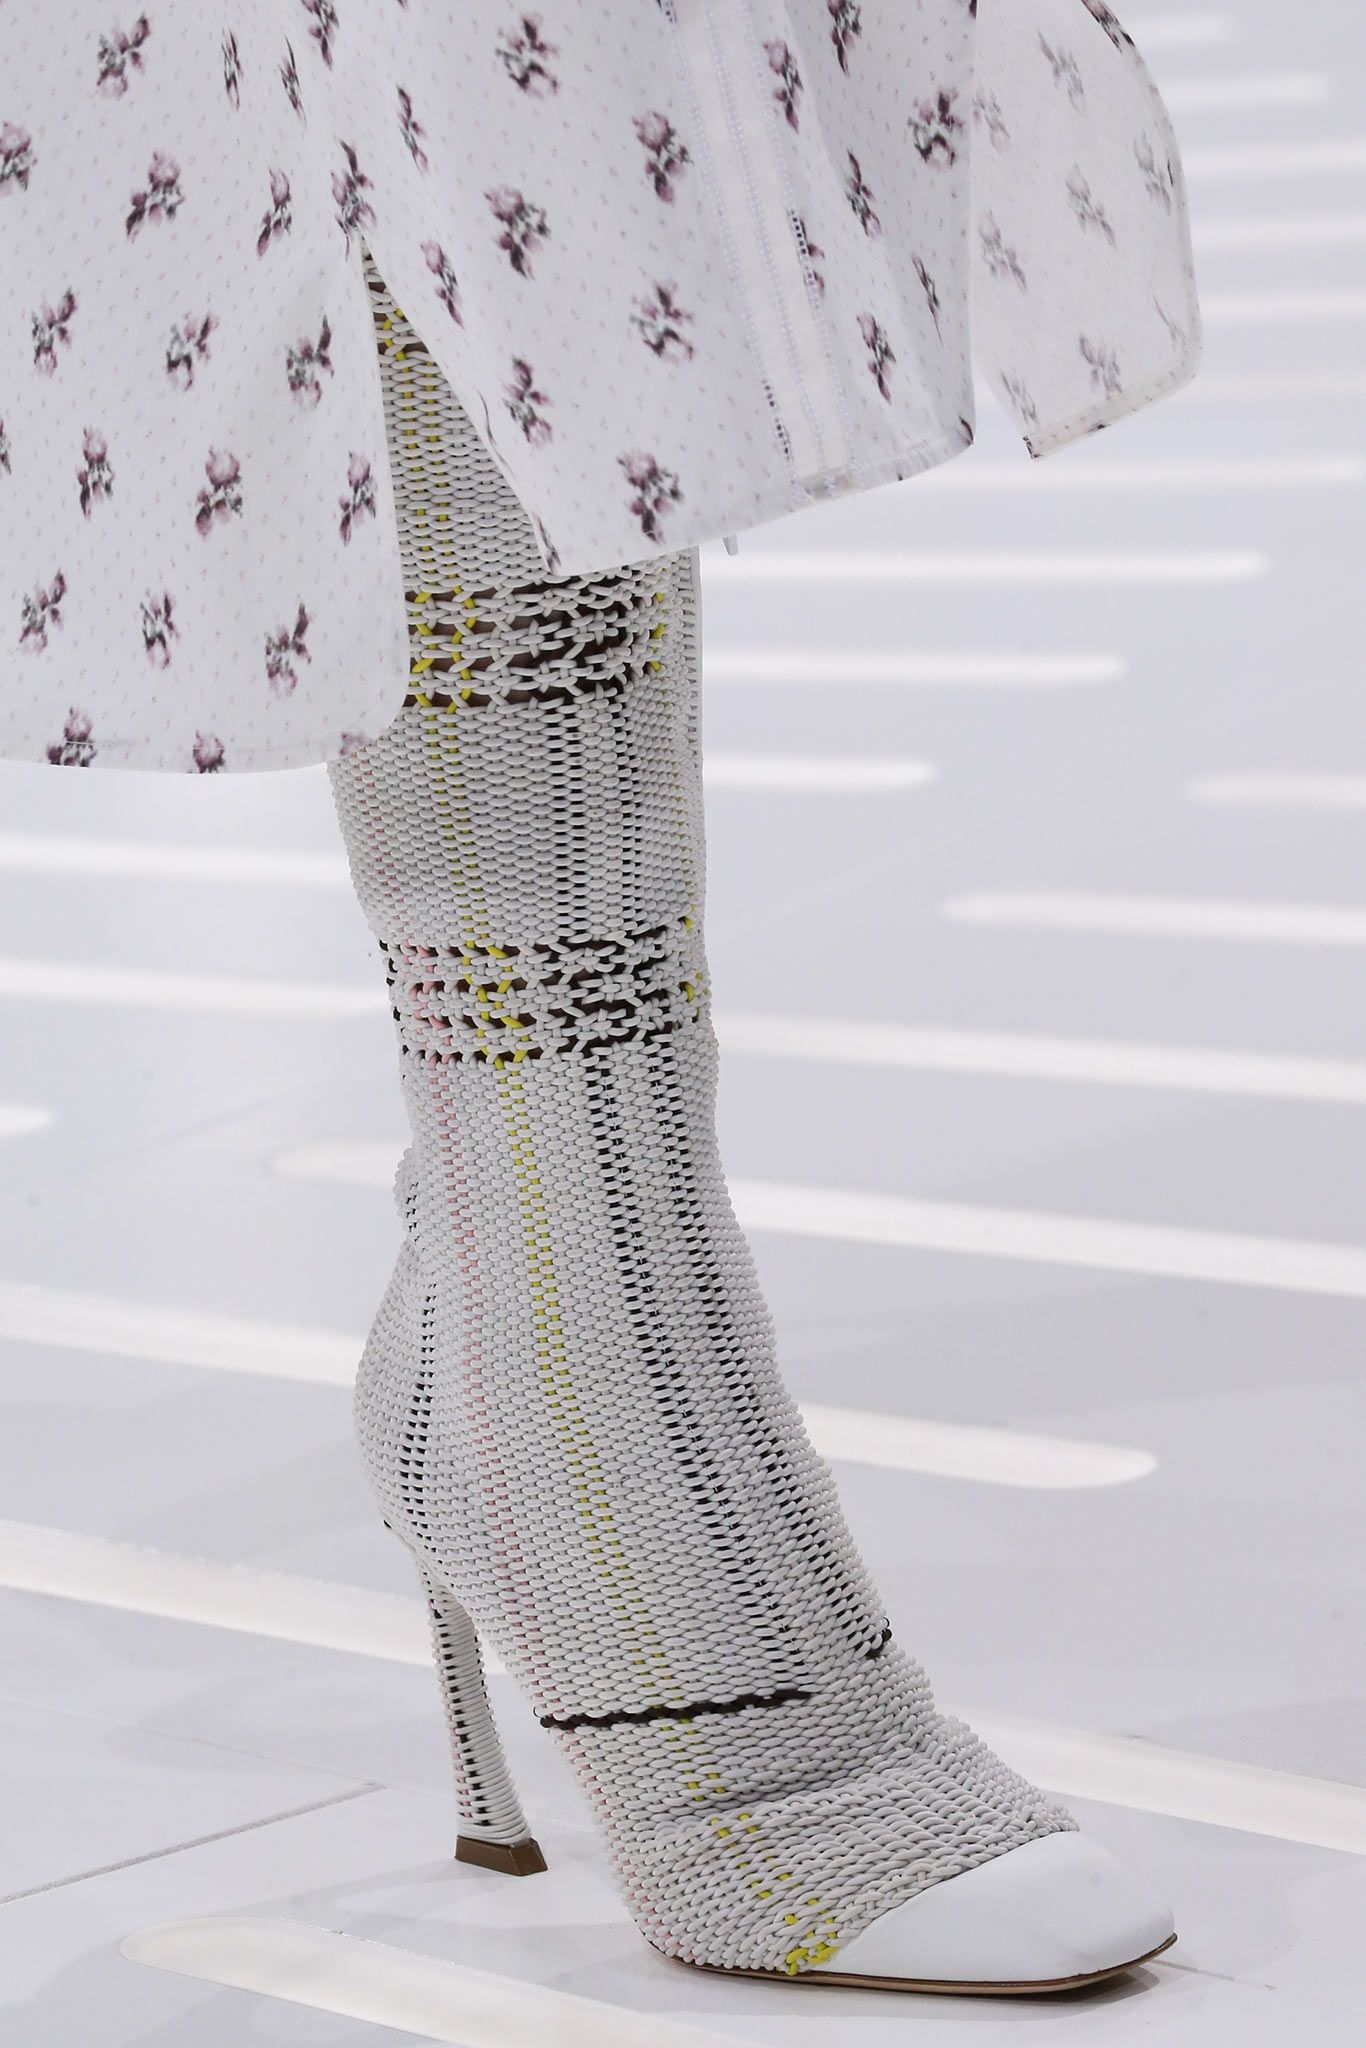 Christian Dior - Spring 2015 Ready-to-Wear - Look 24 of 127